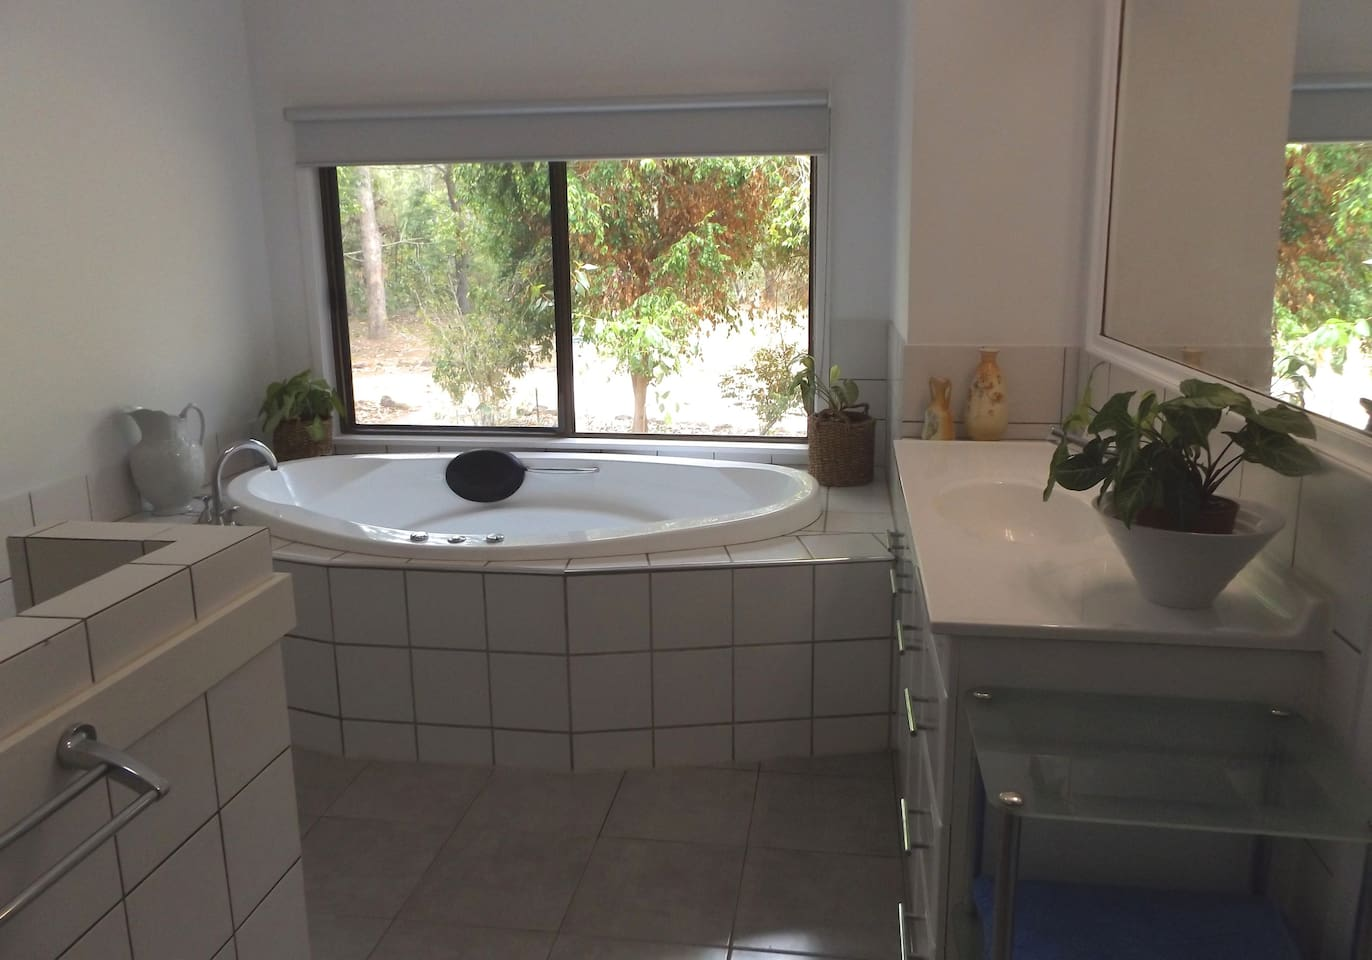 Bathroom with spa and no see through roller blind.